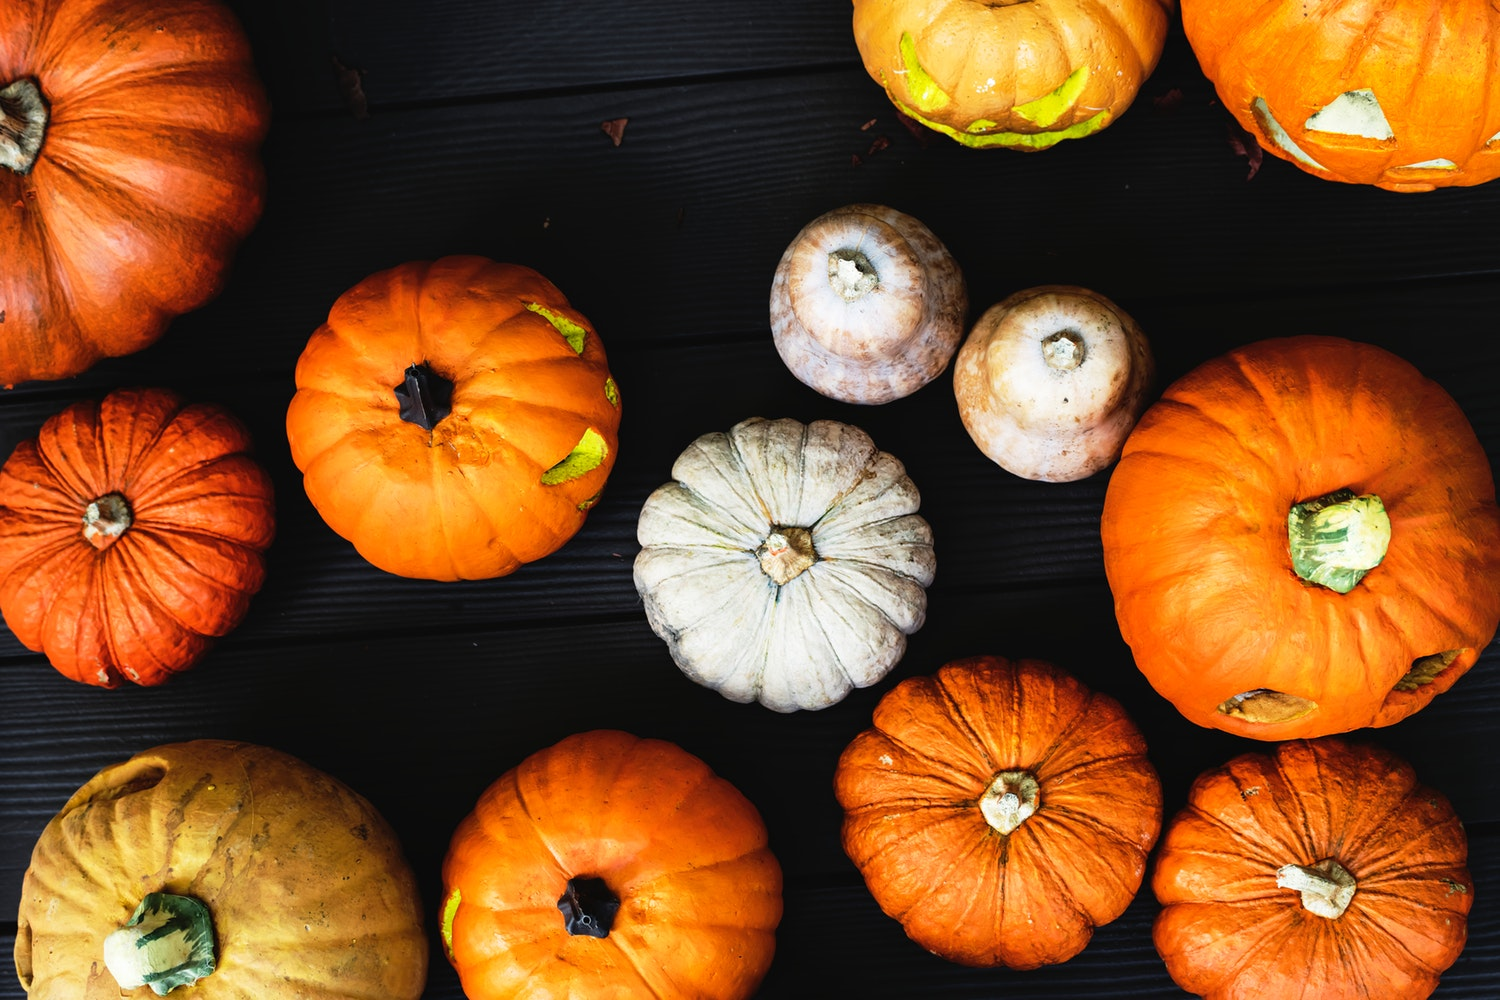 Pumpkin Painting Contest Is One Month Away!